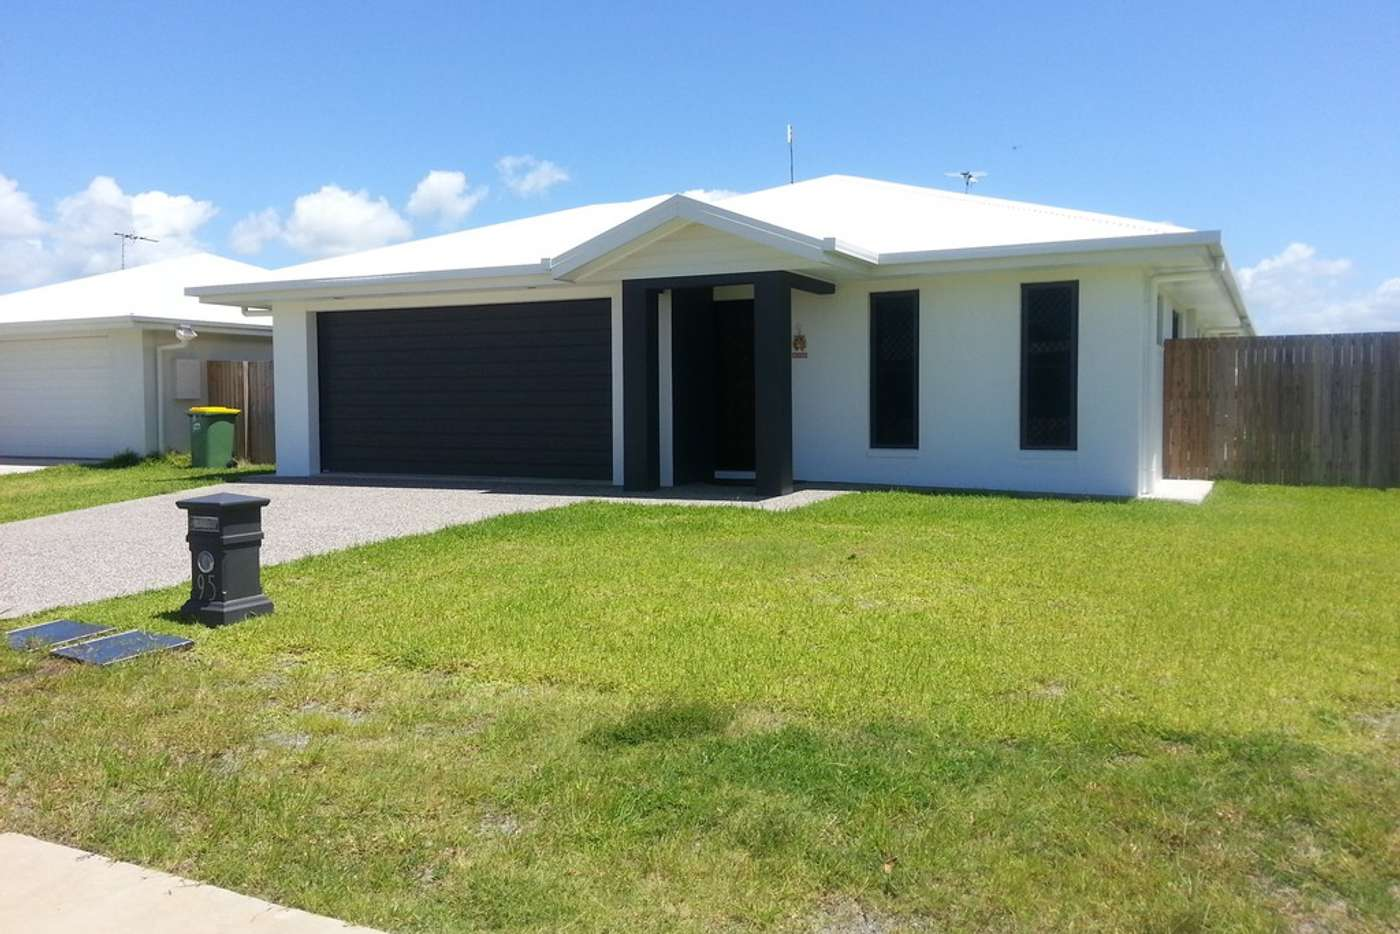 Main view of Homely house listing, 95 Old Mill Drive, Beaconsfield QLD 4740